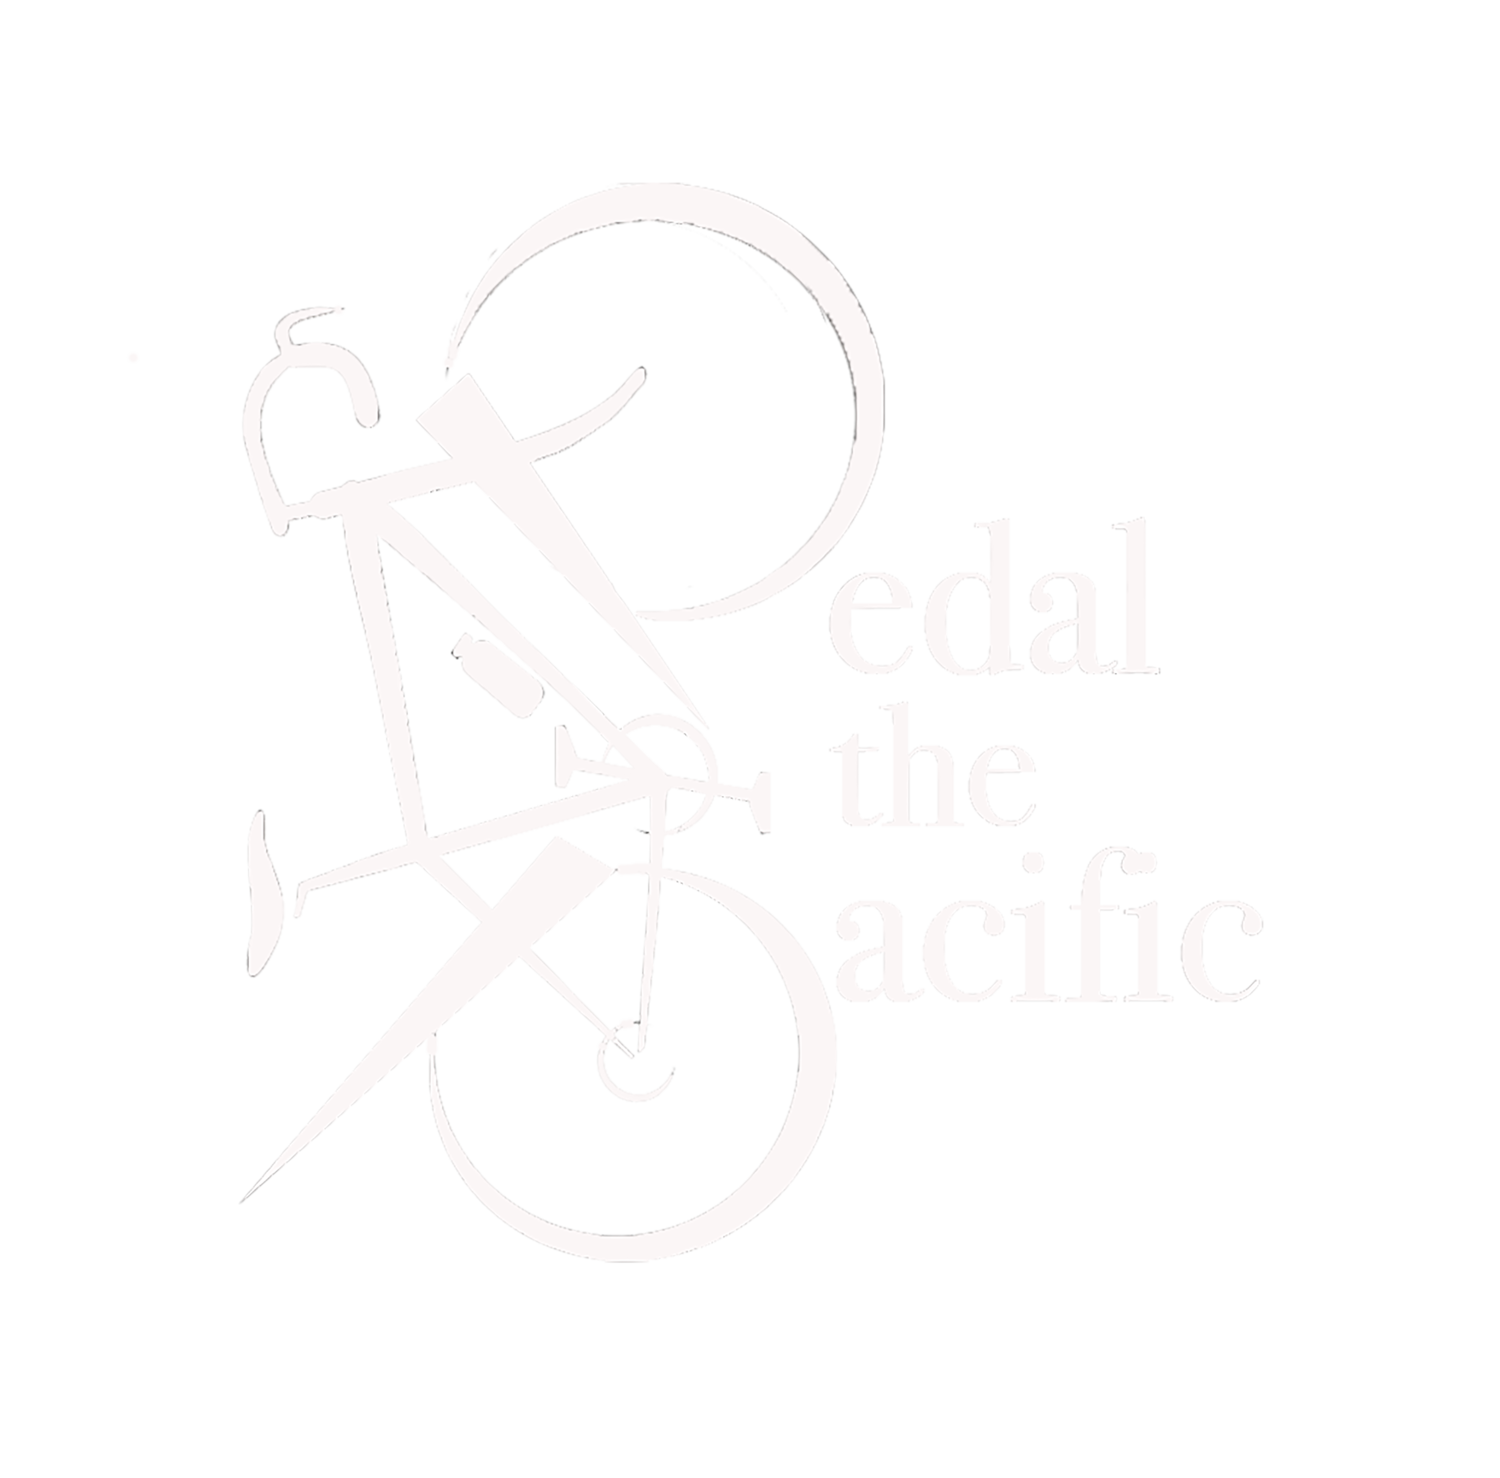 Pedal The Pacific